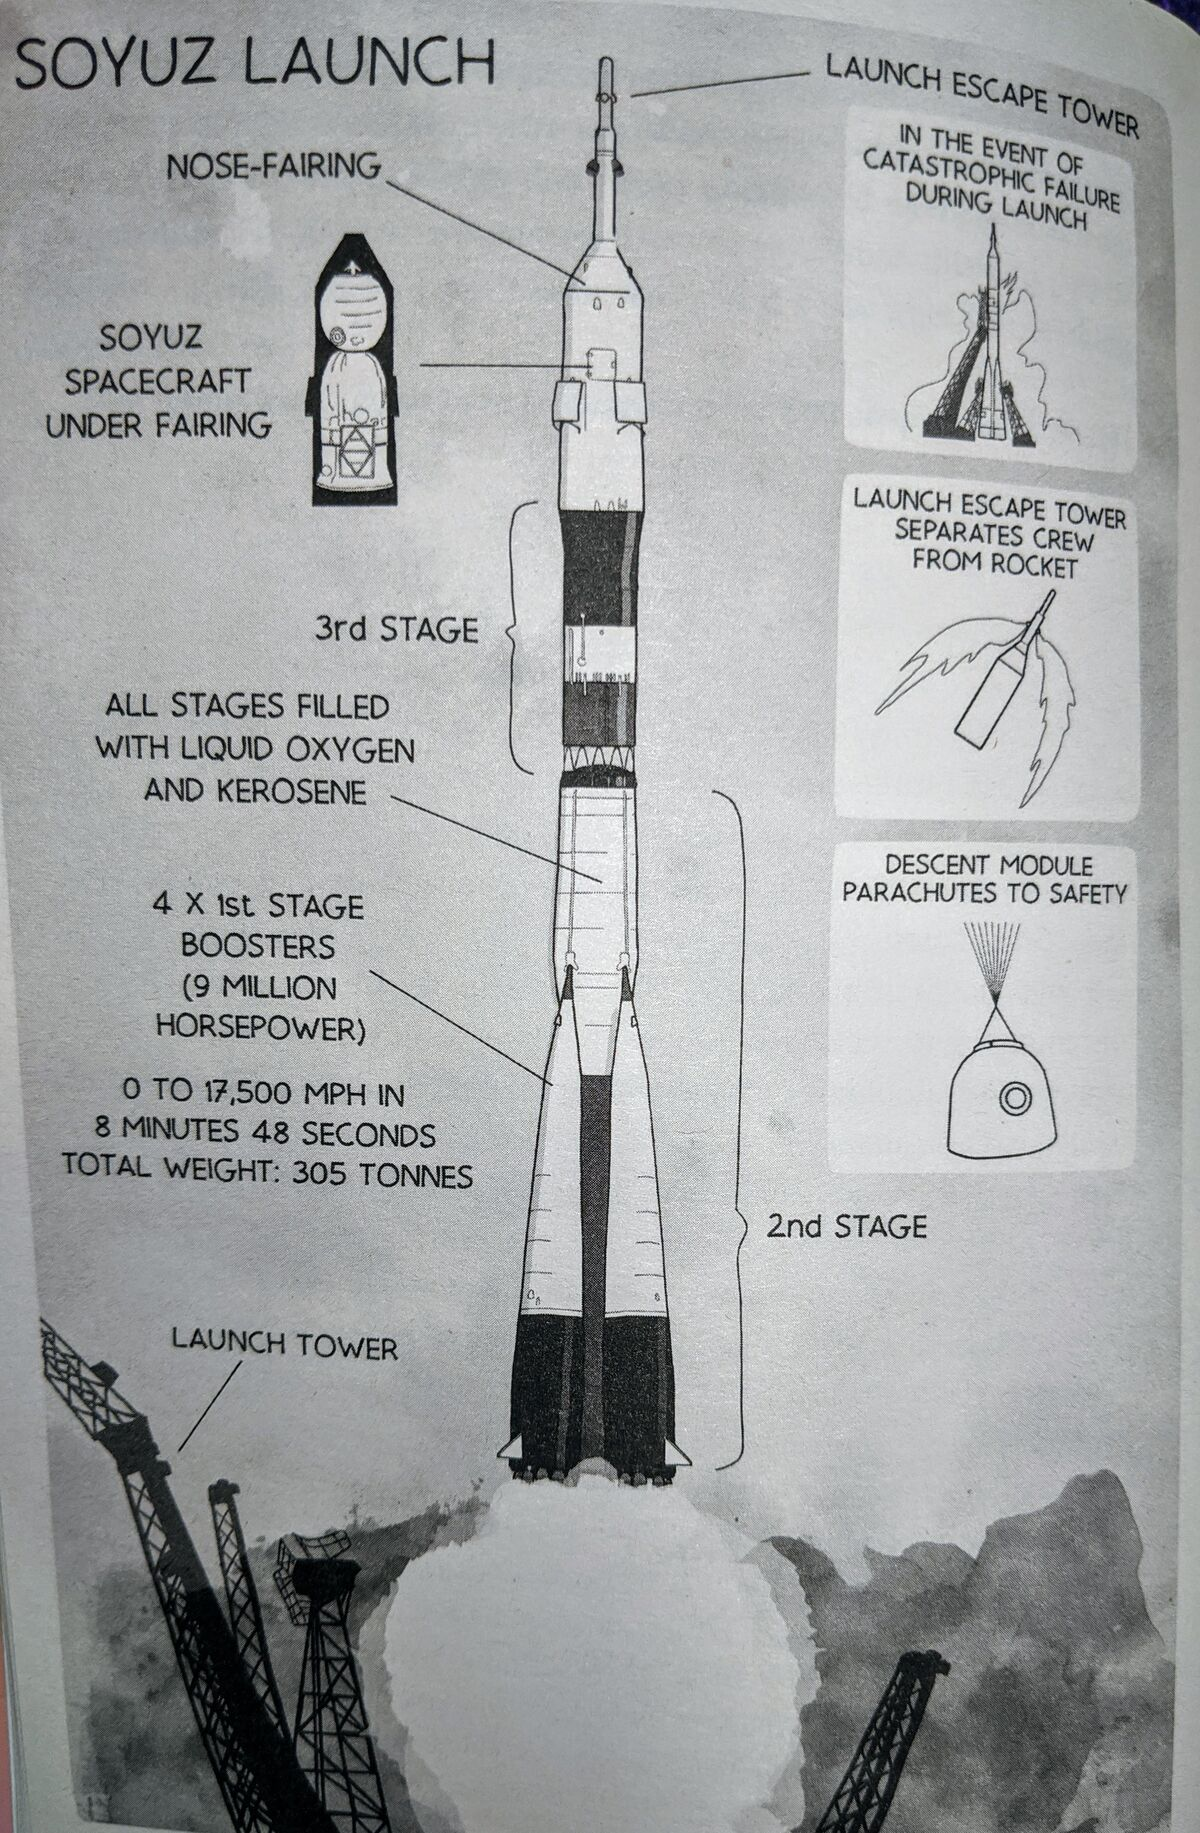 Soyuz Launch. Courtesy: Ask an Astronaut published by Arrow Books